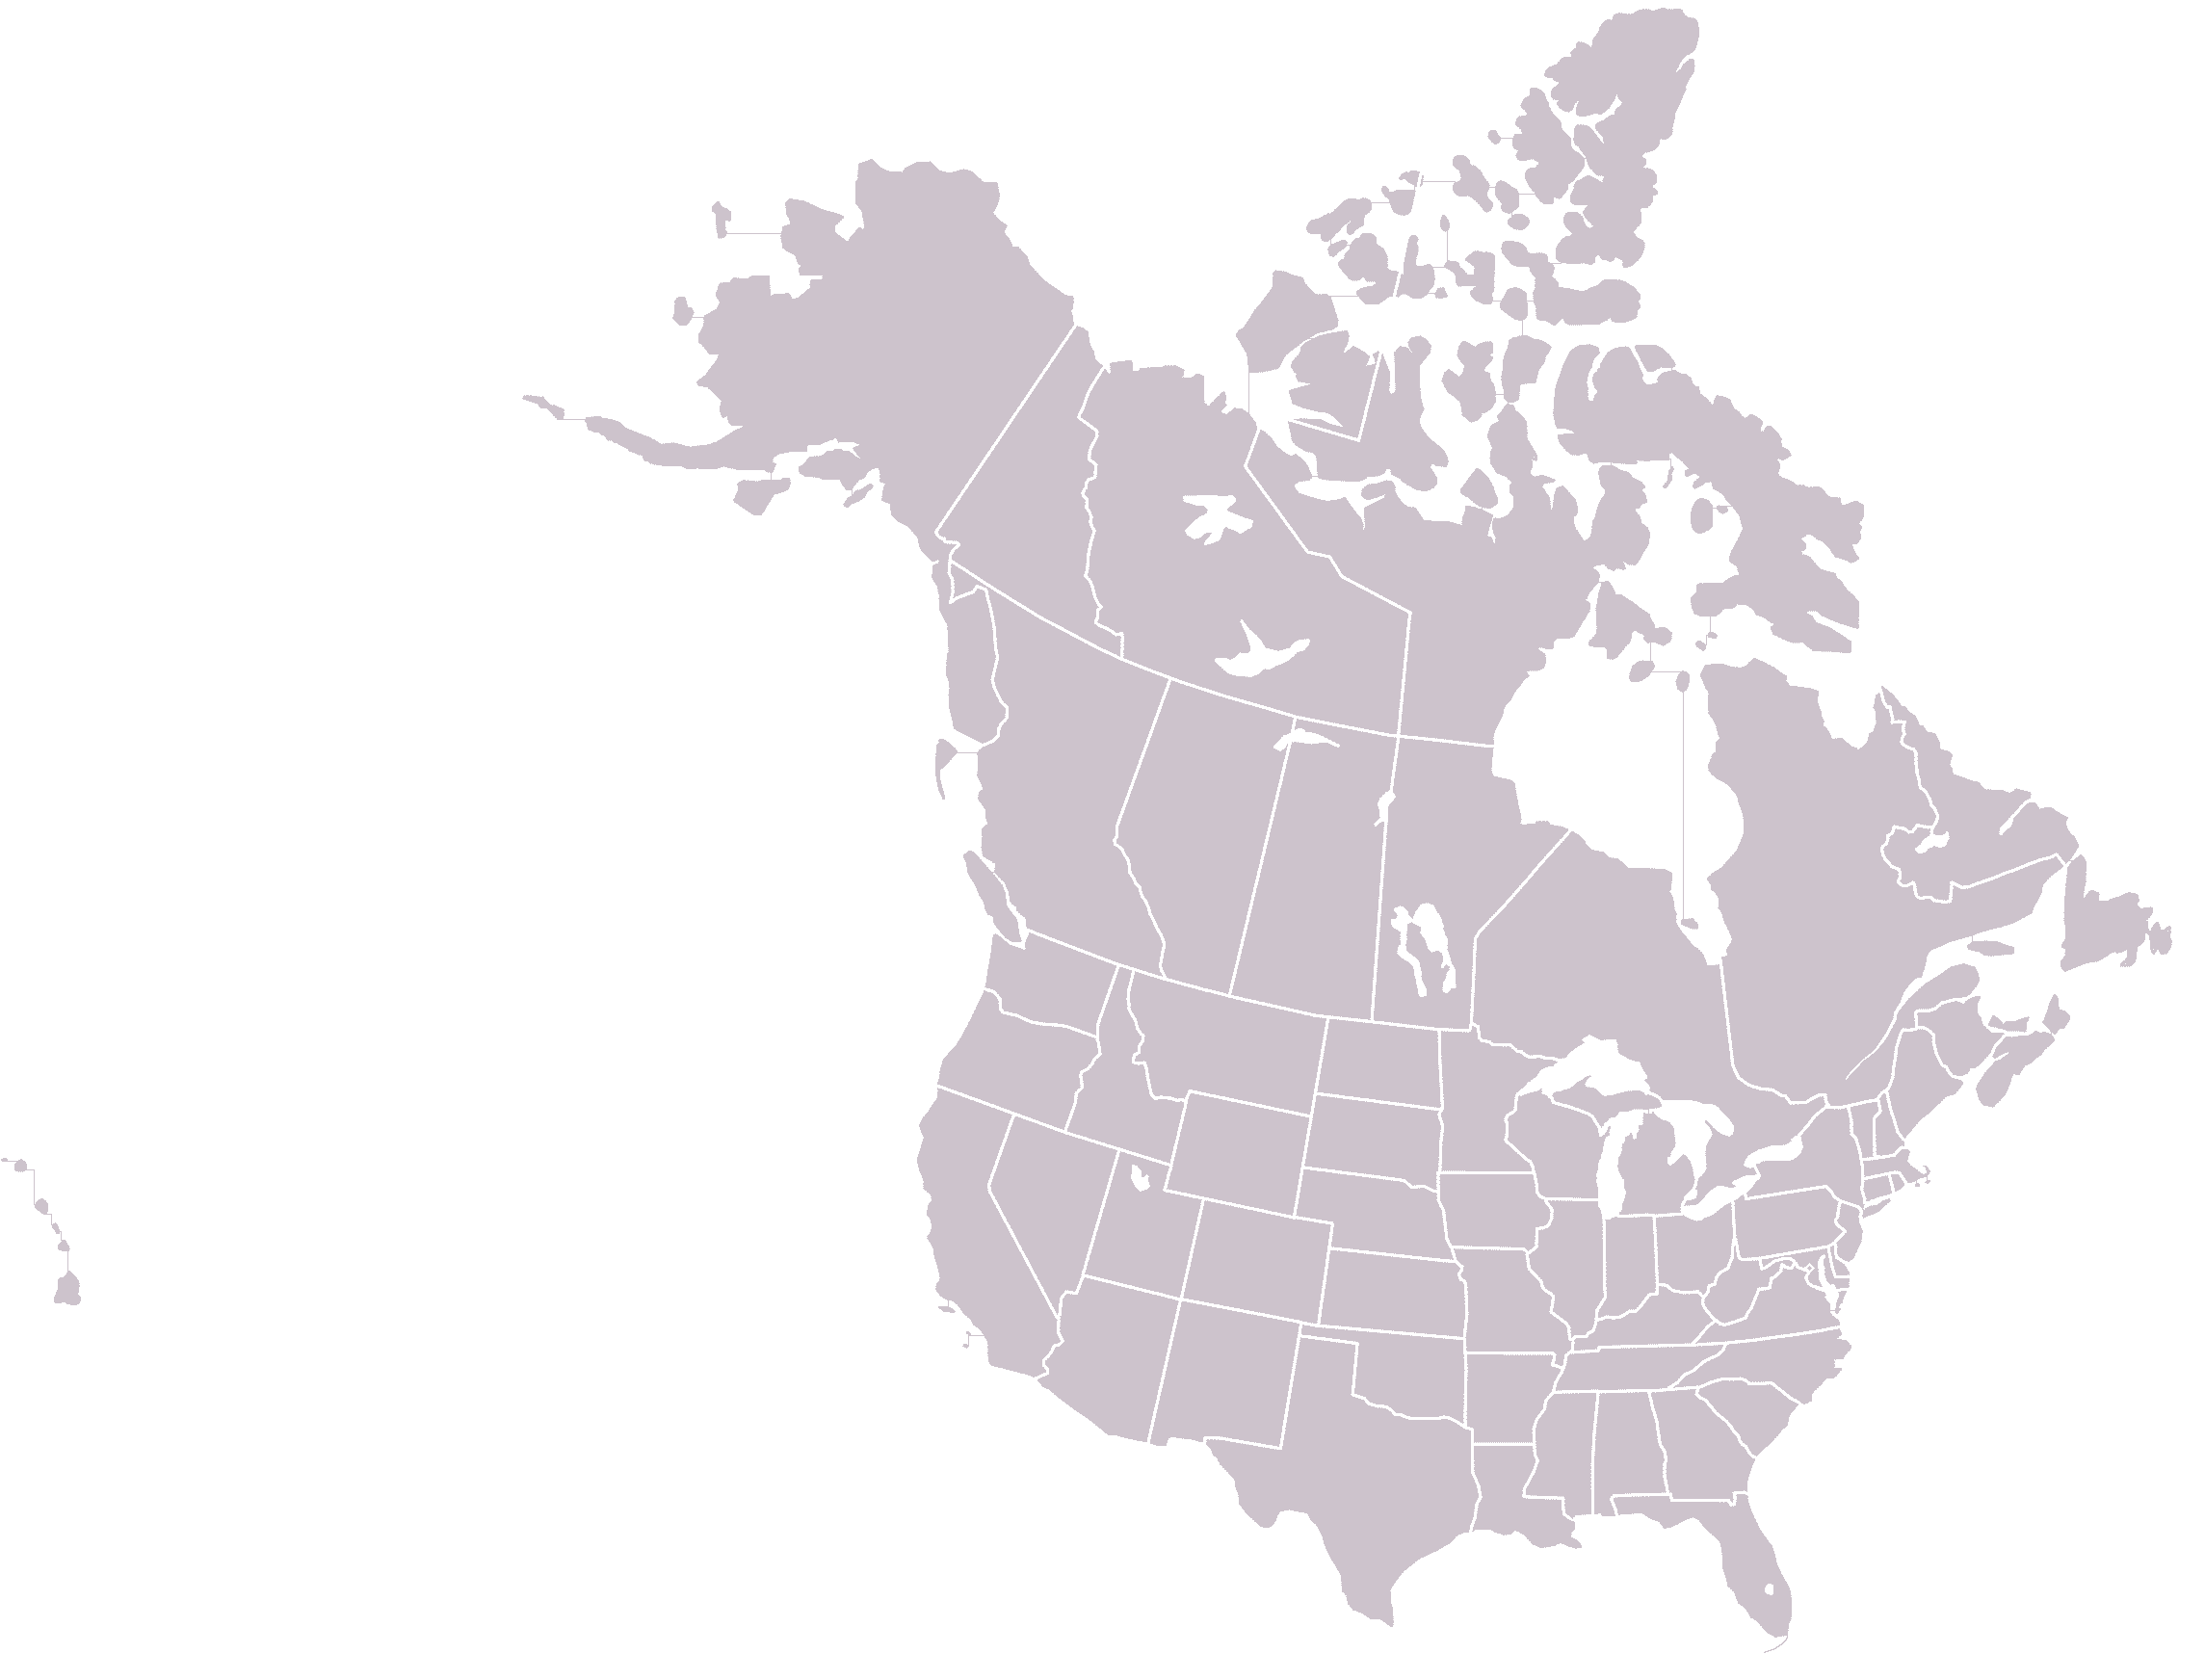 FileBlankMapUSAstatesCanadaprovincespng Wikimedia Commons - Map of canada and us